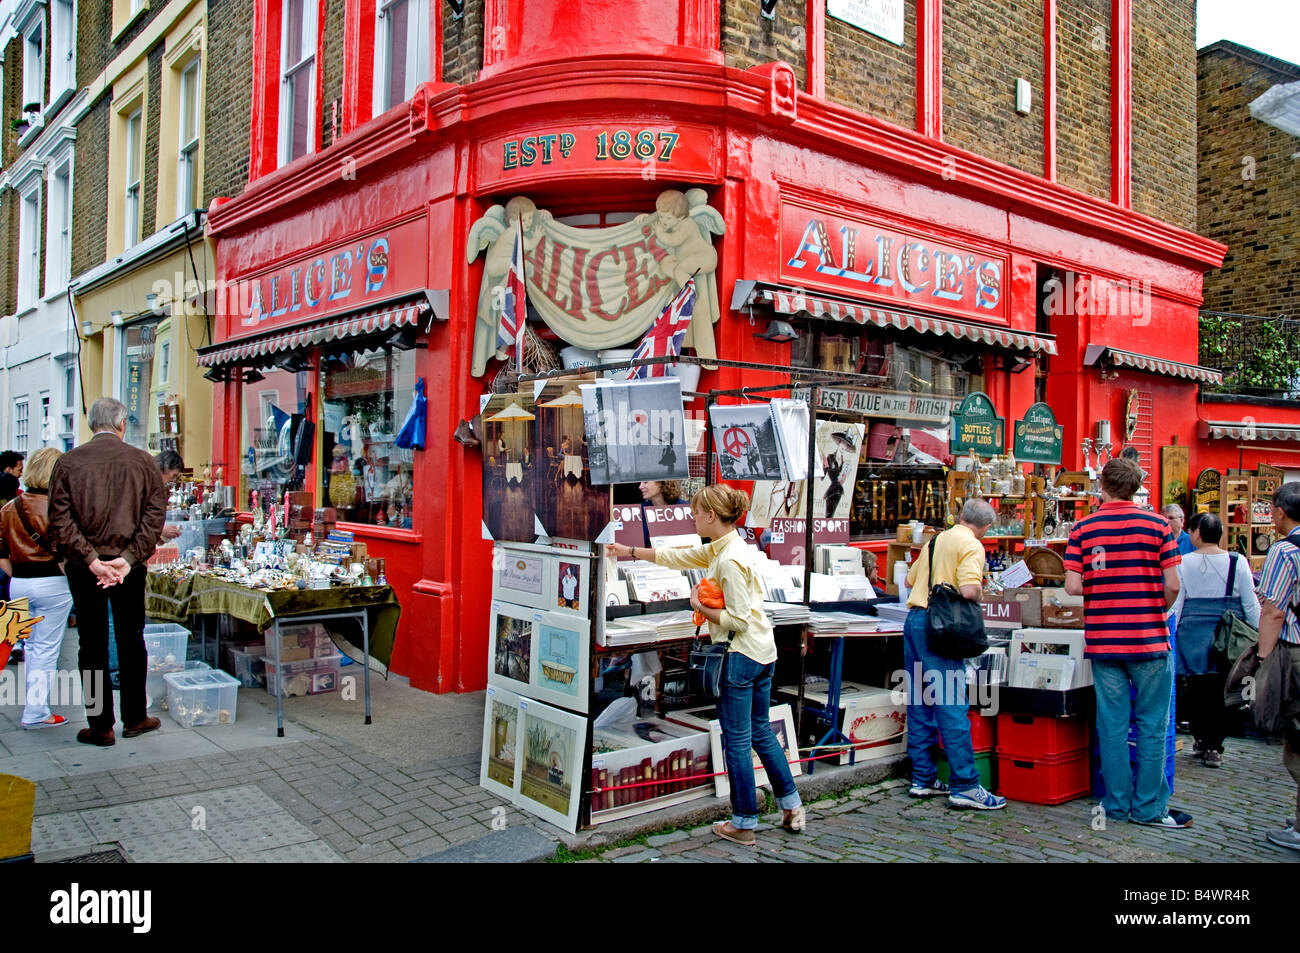 antique portobello road market notting hill london stock photo 20235959 alamy. Black Bedroom Furniture Sets. Home Design Ideas